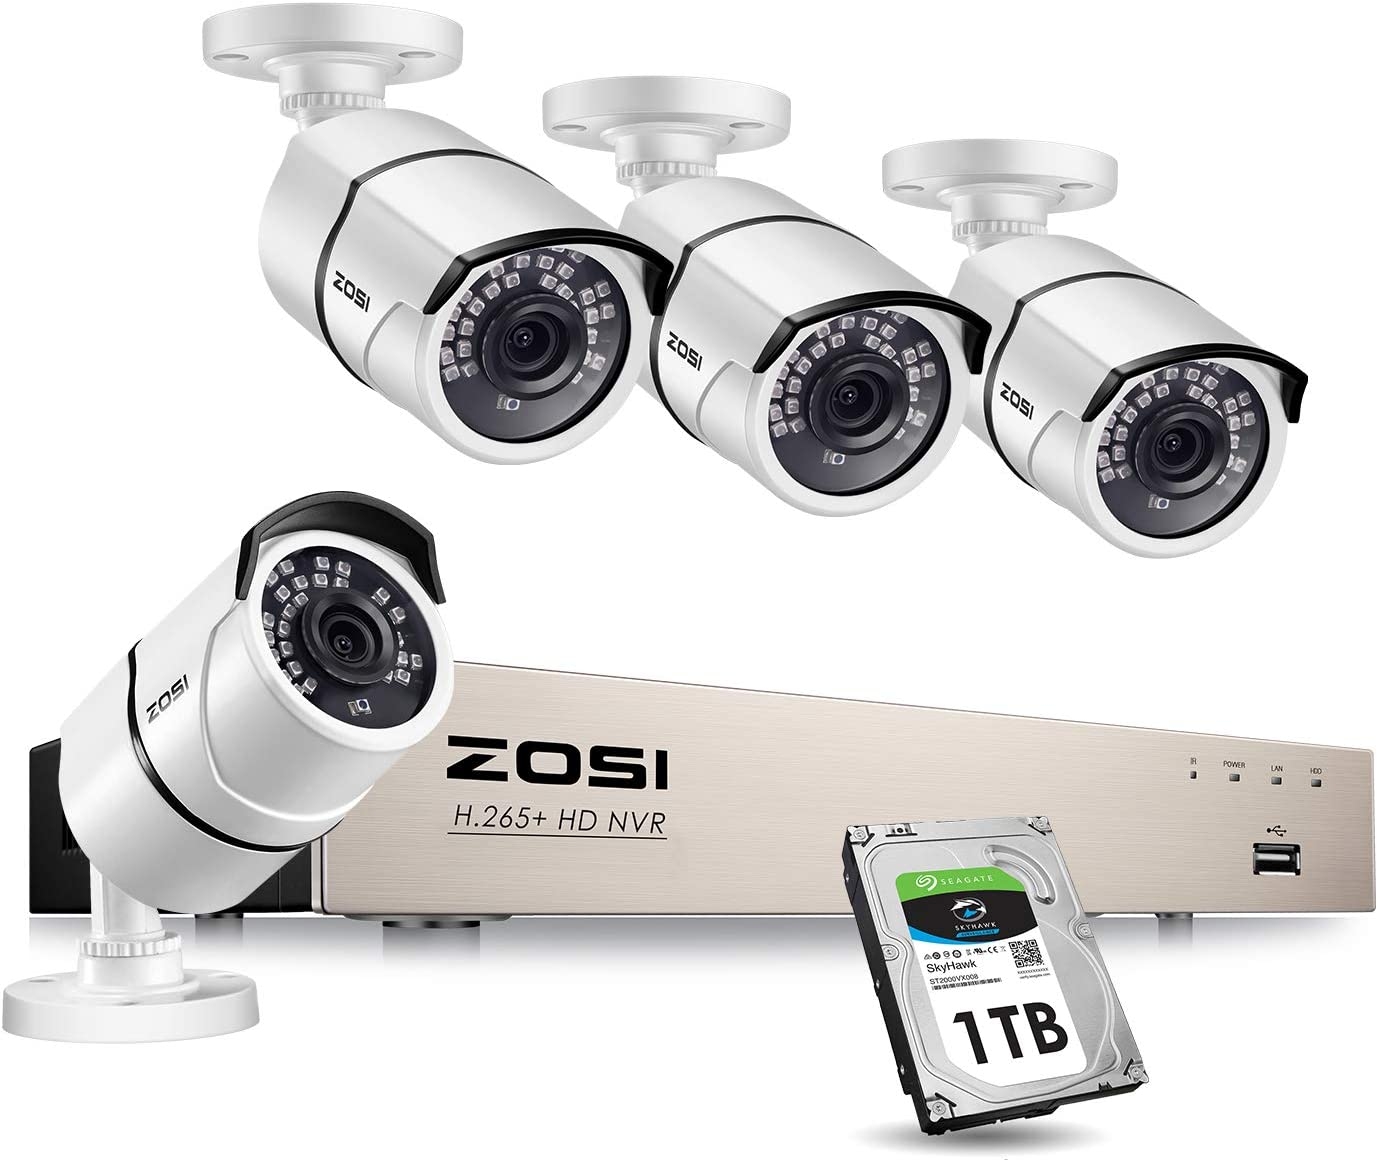 ZOSI PoE Home Security Camera System,H.265+ 8Channel 5MP CCTV NVR Recorder with 1TB Hard Drive and (4) 2MP 1080P Indoor Outdoor Weatherproof PoE IP Cameras with 120ft Night Vision for 24/7 Recording